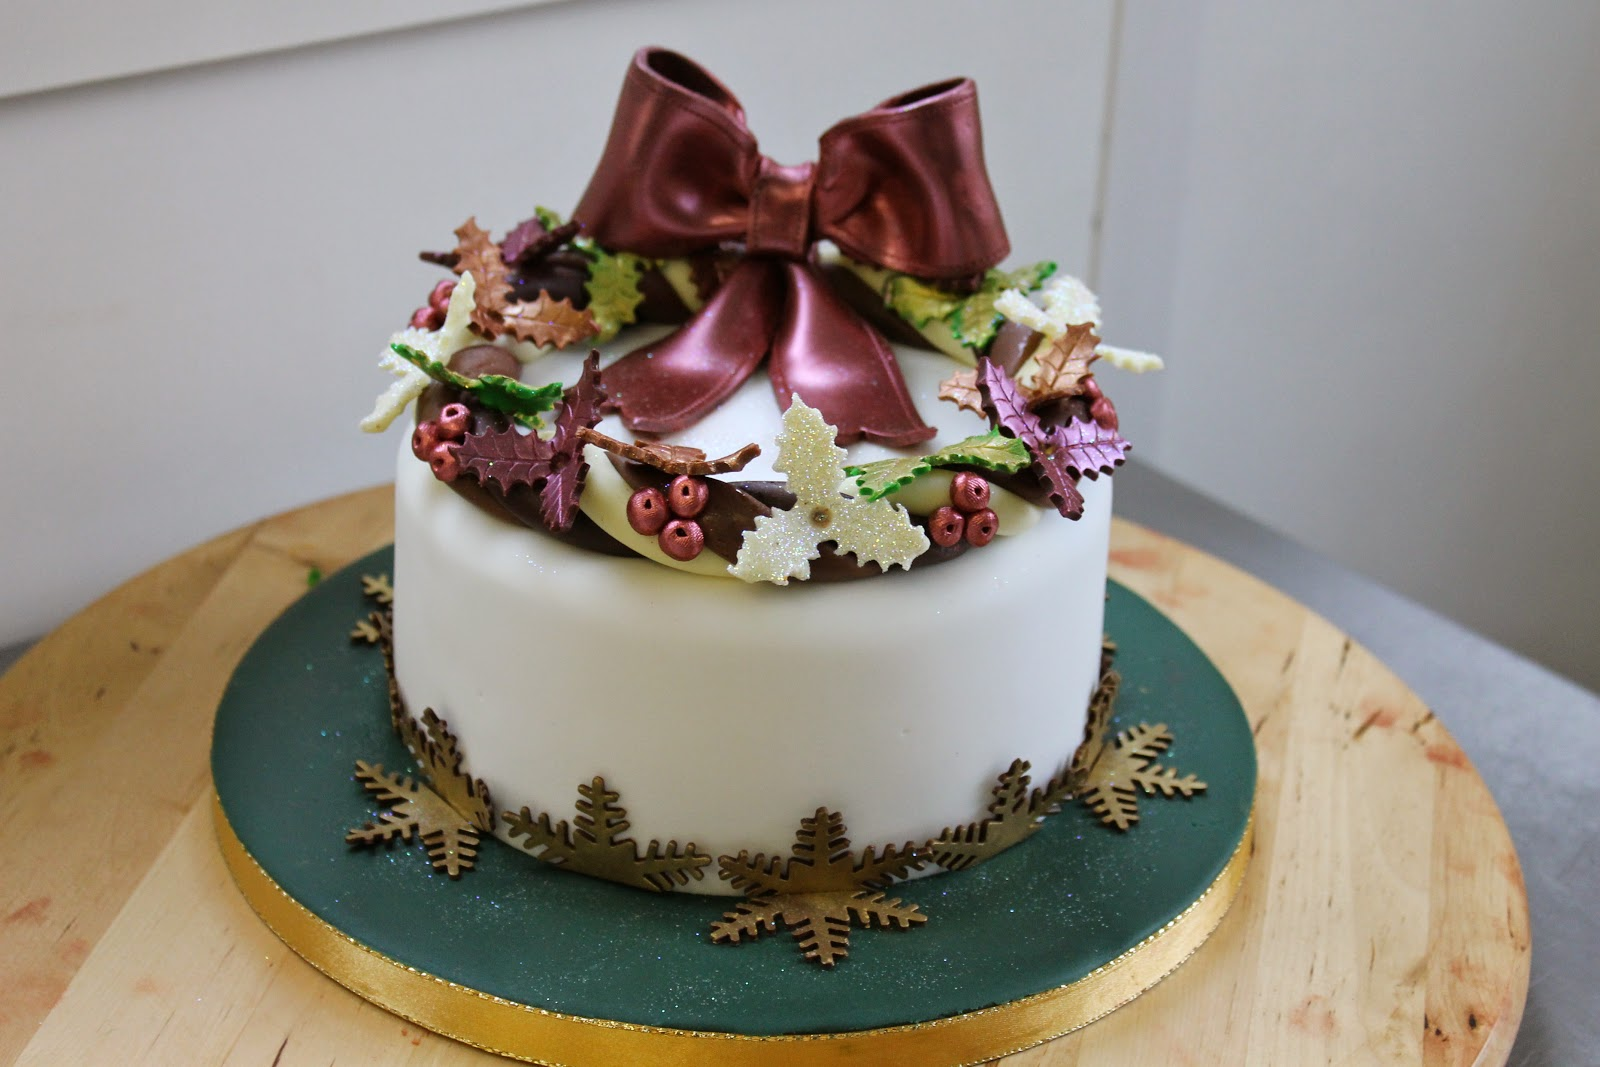 Chocolate Christmas Cake Decorating Ideas : Christmas cake decoration ideas beautiful creatife my blog